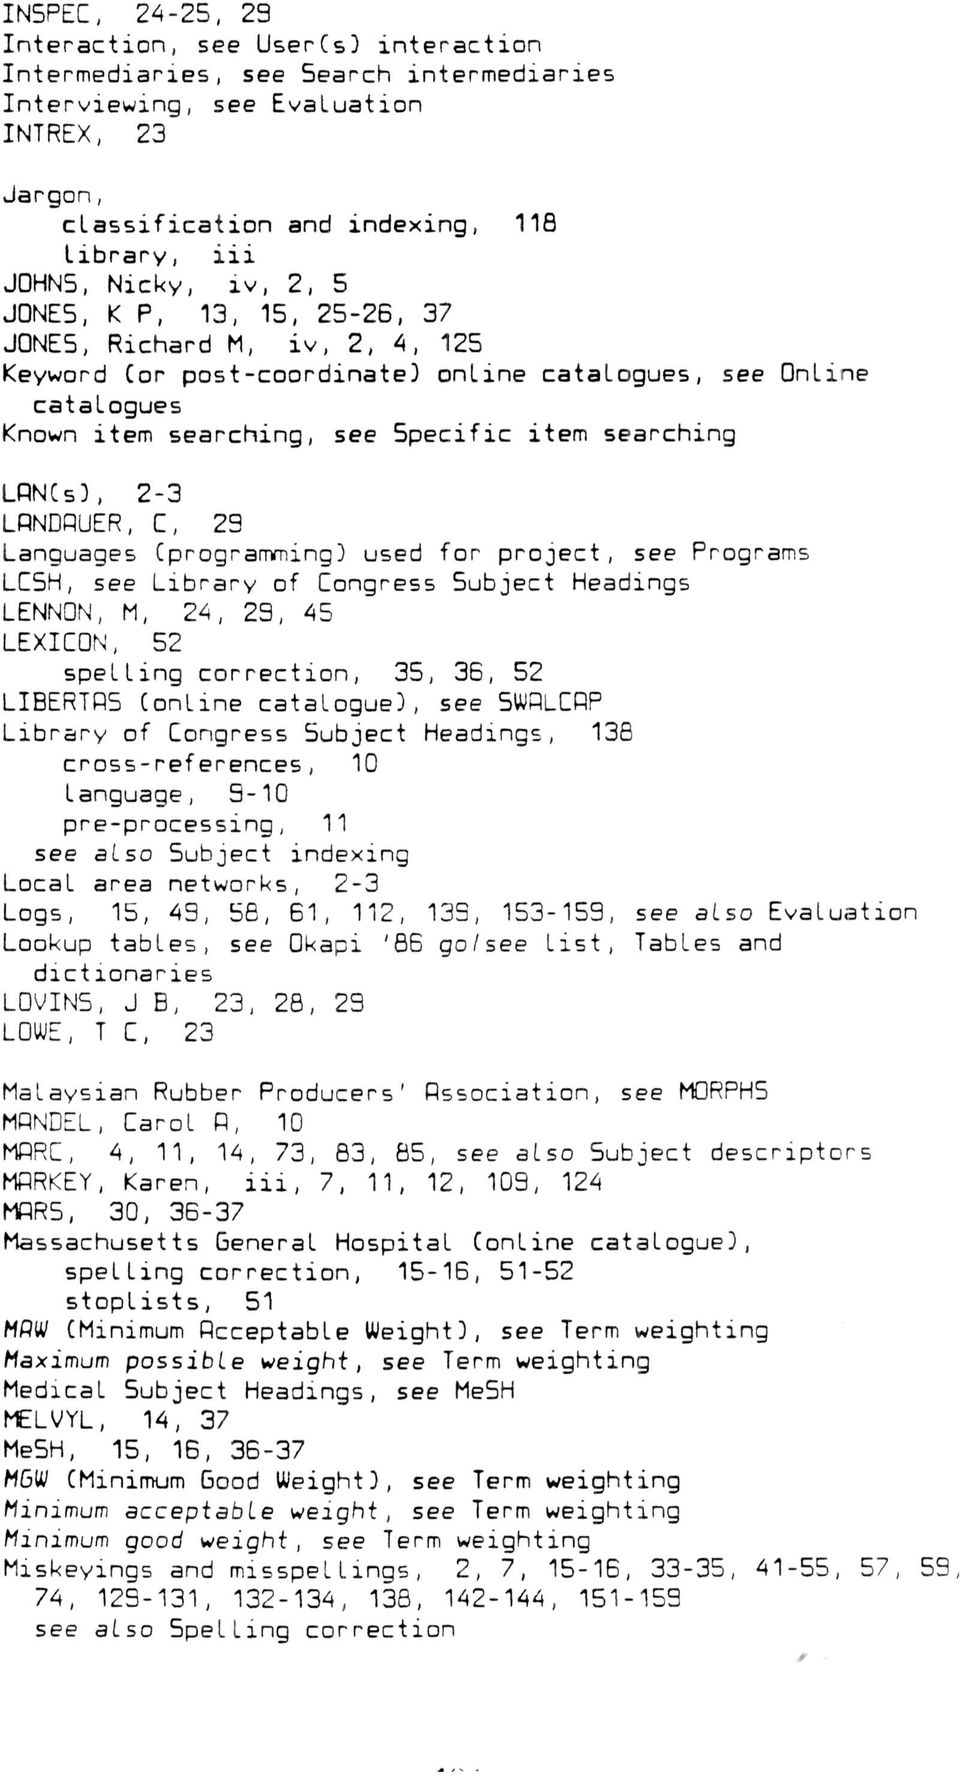 LRN(s), 2-3 LRNDRUER, C, 23 Languages [programming) used for project, see Programs LCSH, see Library of Congress 5ubject Headings LENNON, M, 24, 29, 45 LEXICON, 52 spelling correction, 35, 36, 52